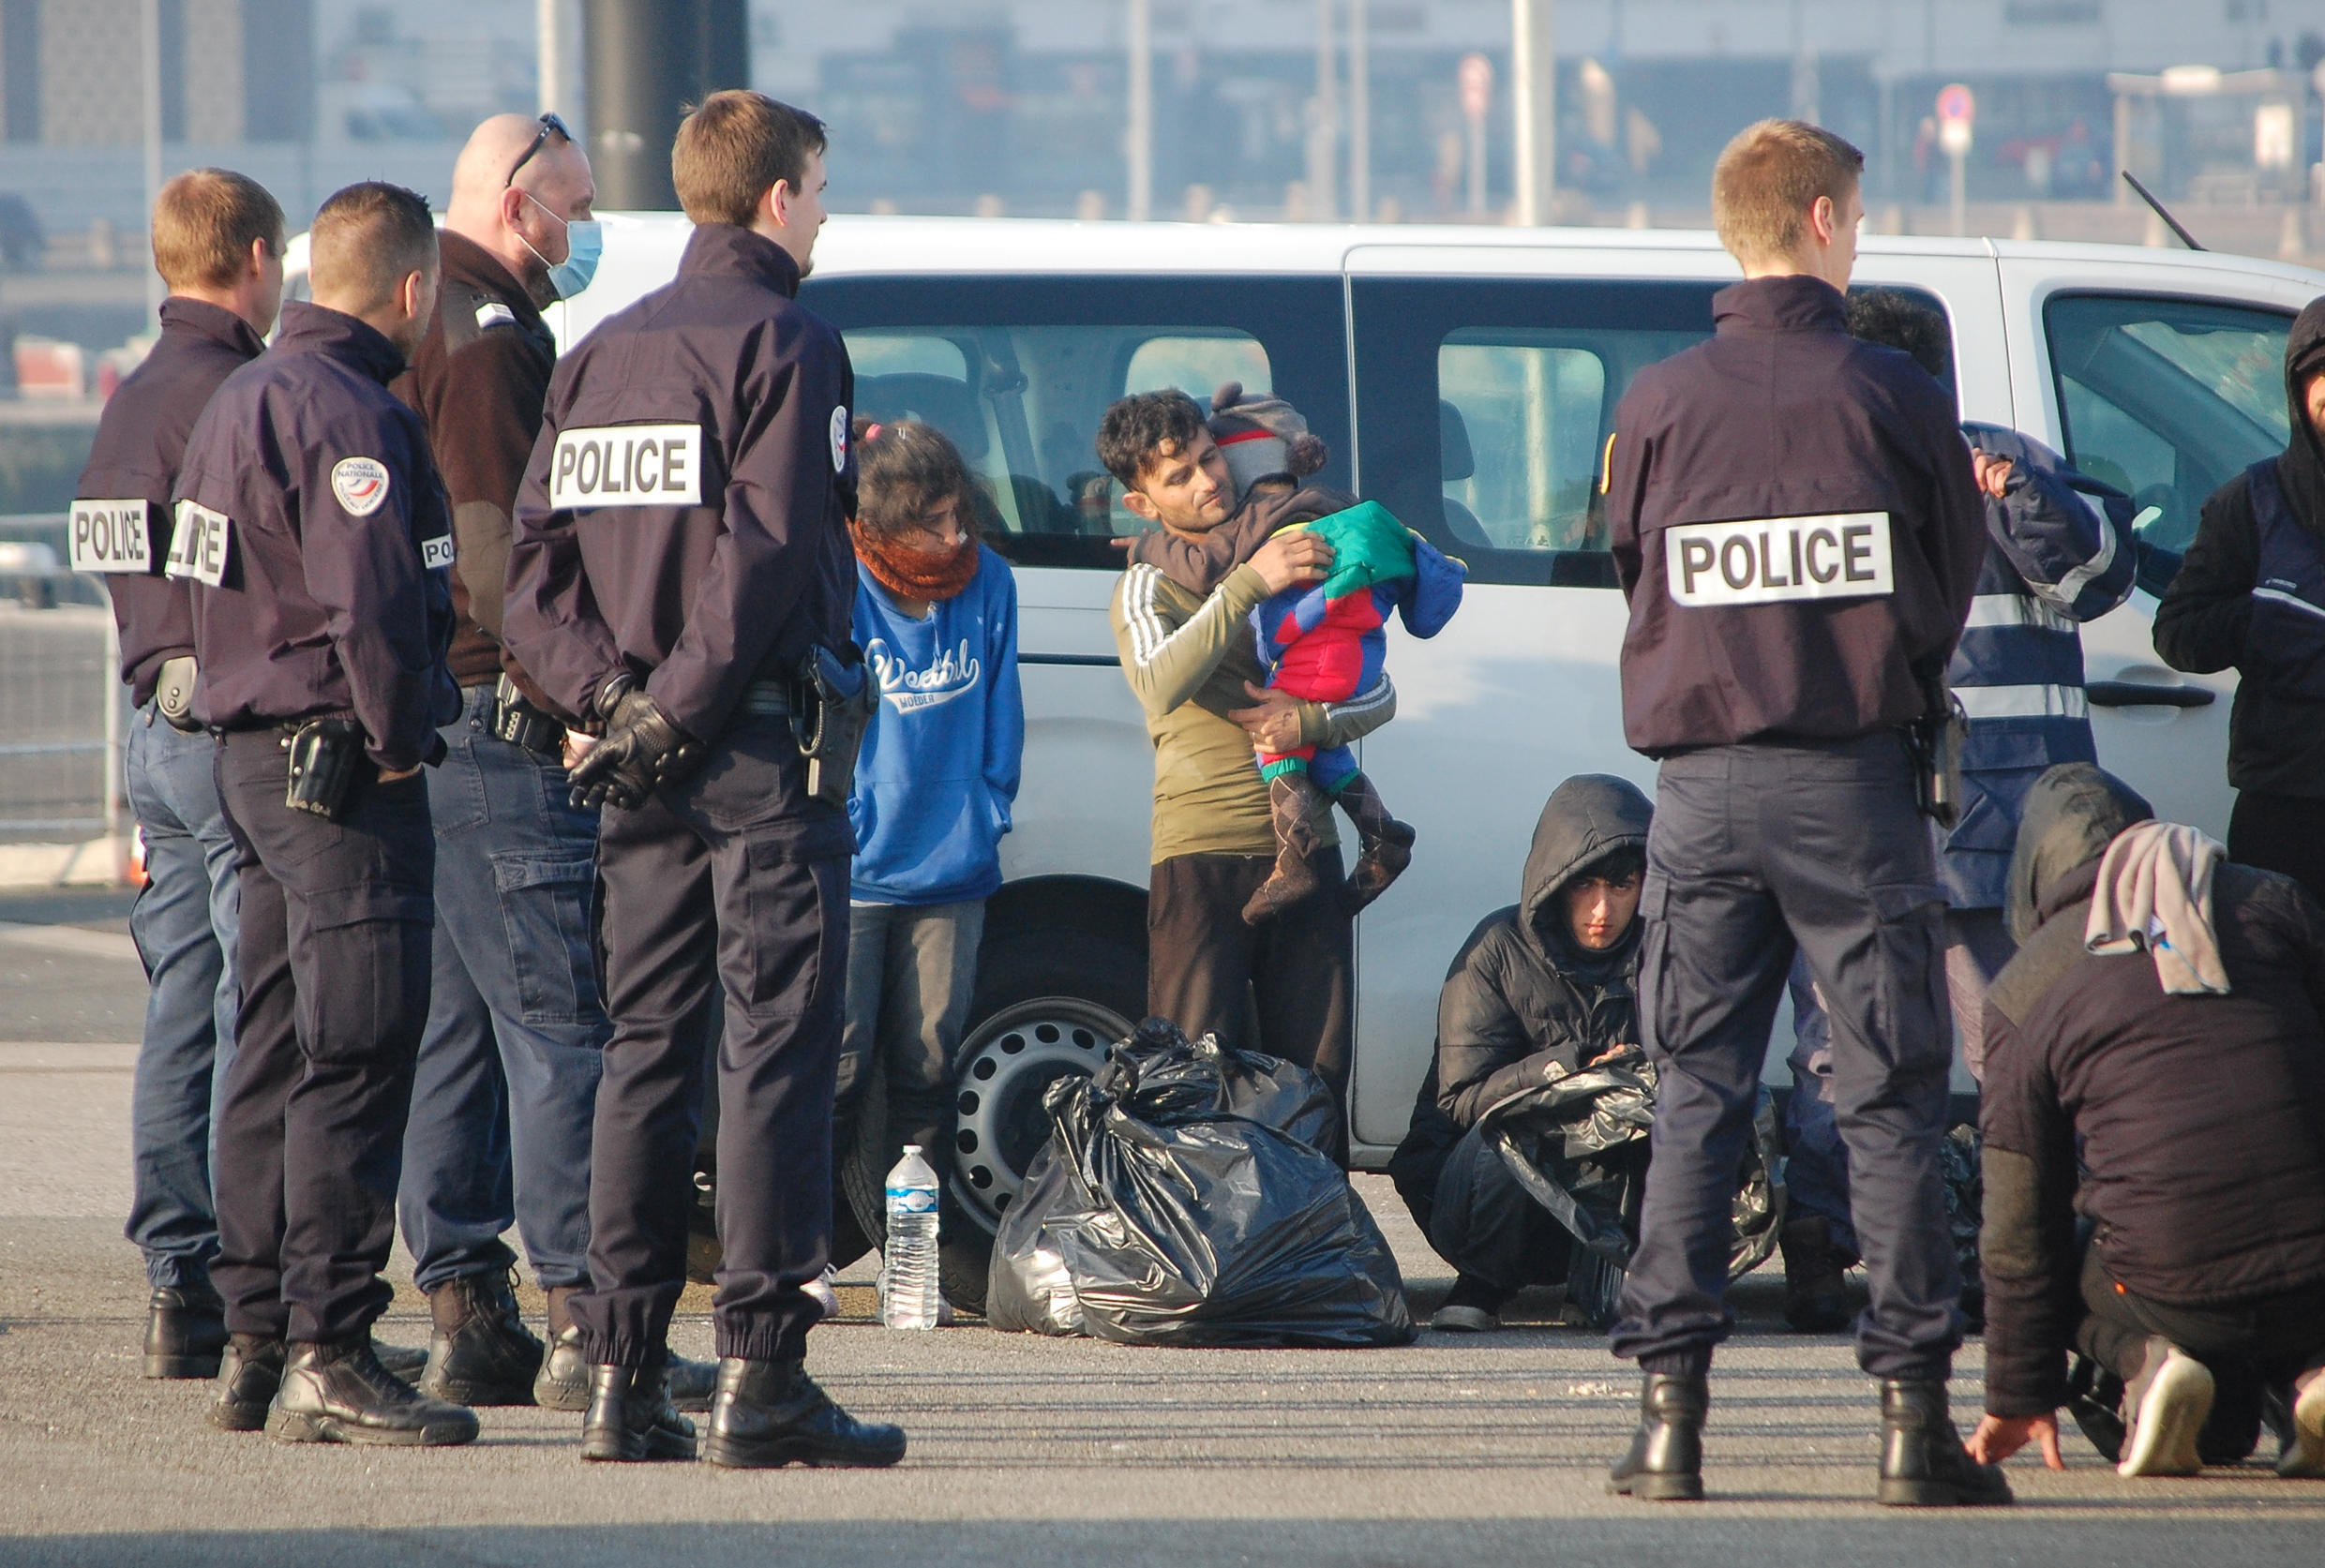 Migrants picked up by maritime police near the French port of Calais.